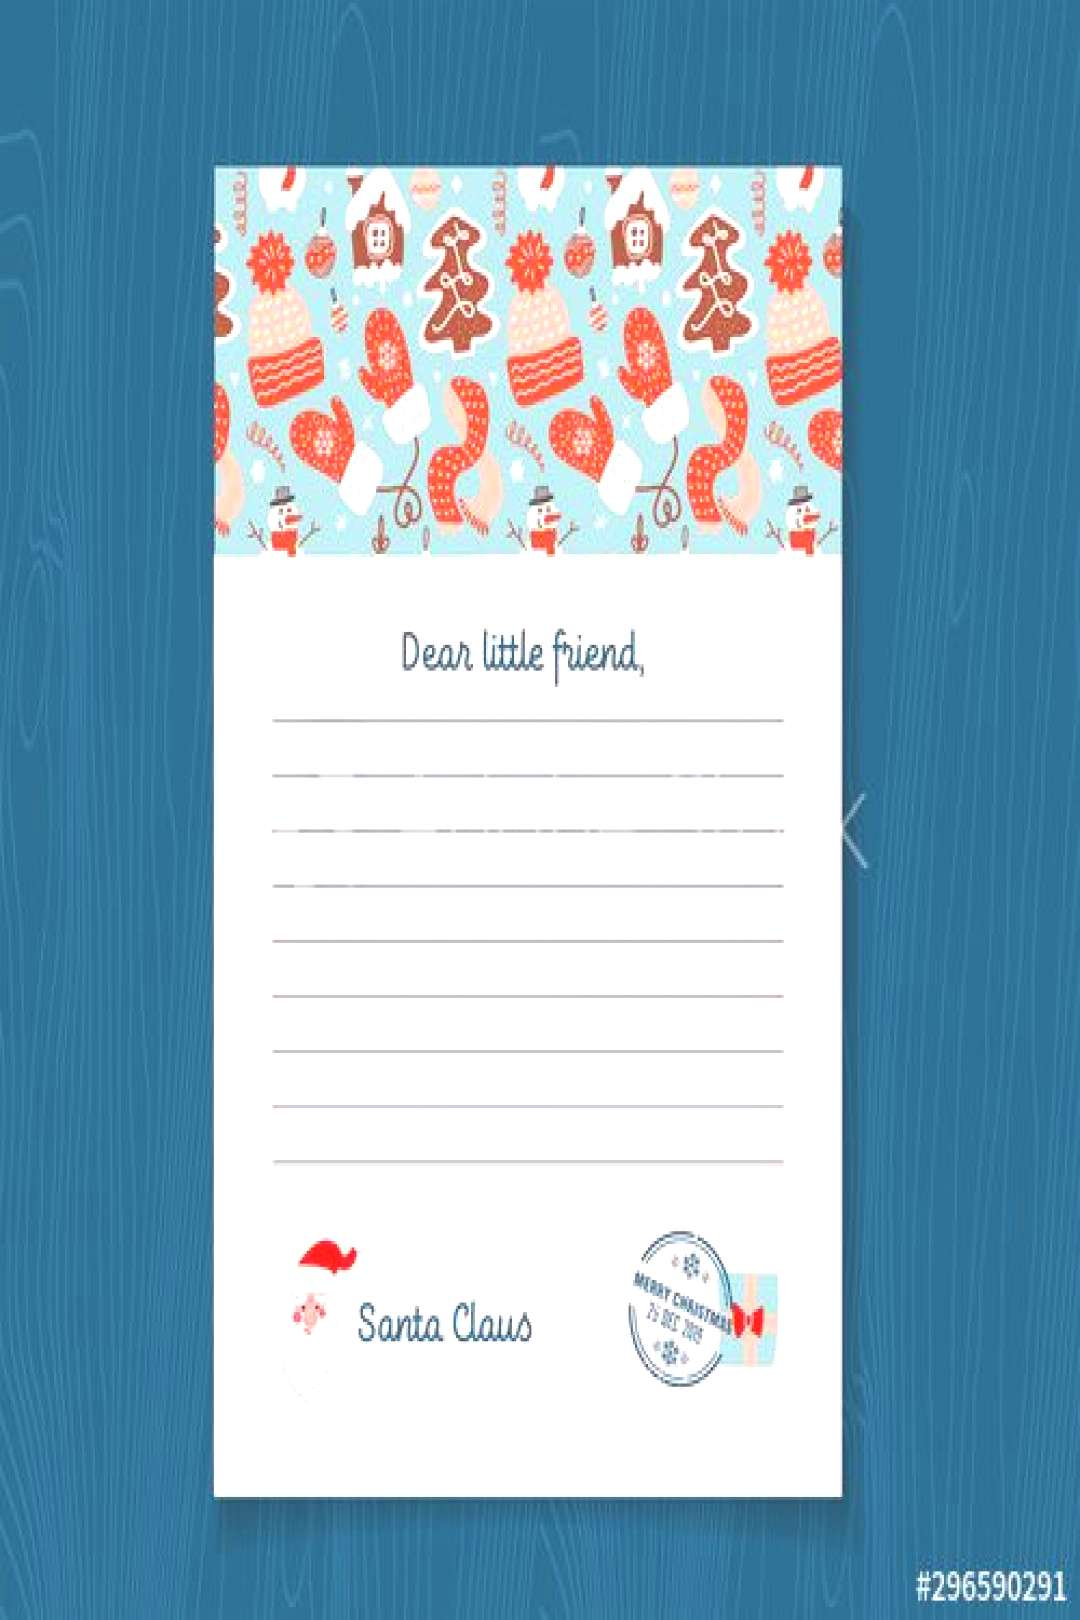 Response letter from Santa Claus template. Christmas Pattern with Gingerbread men, Mittens, knitted